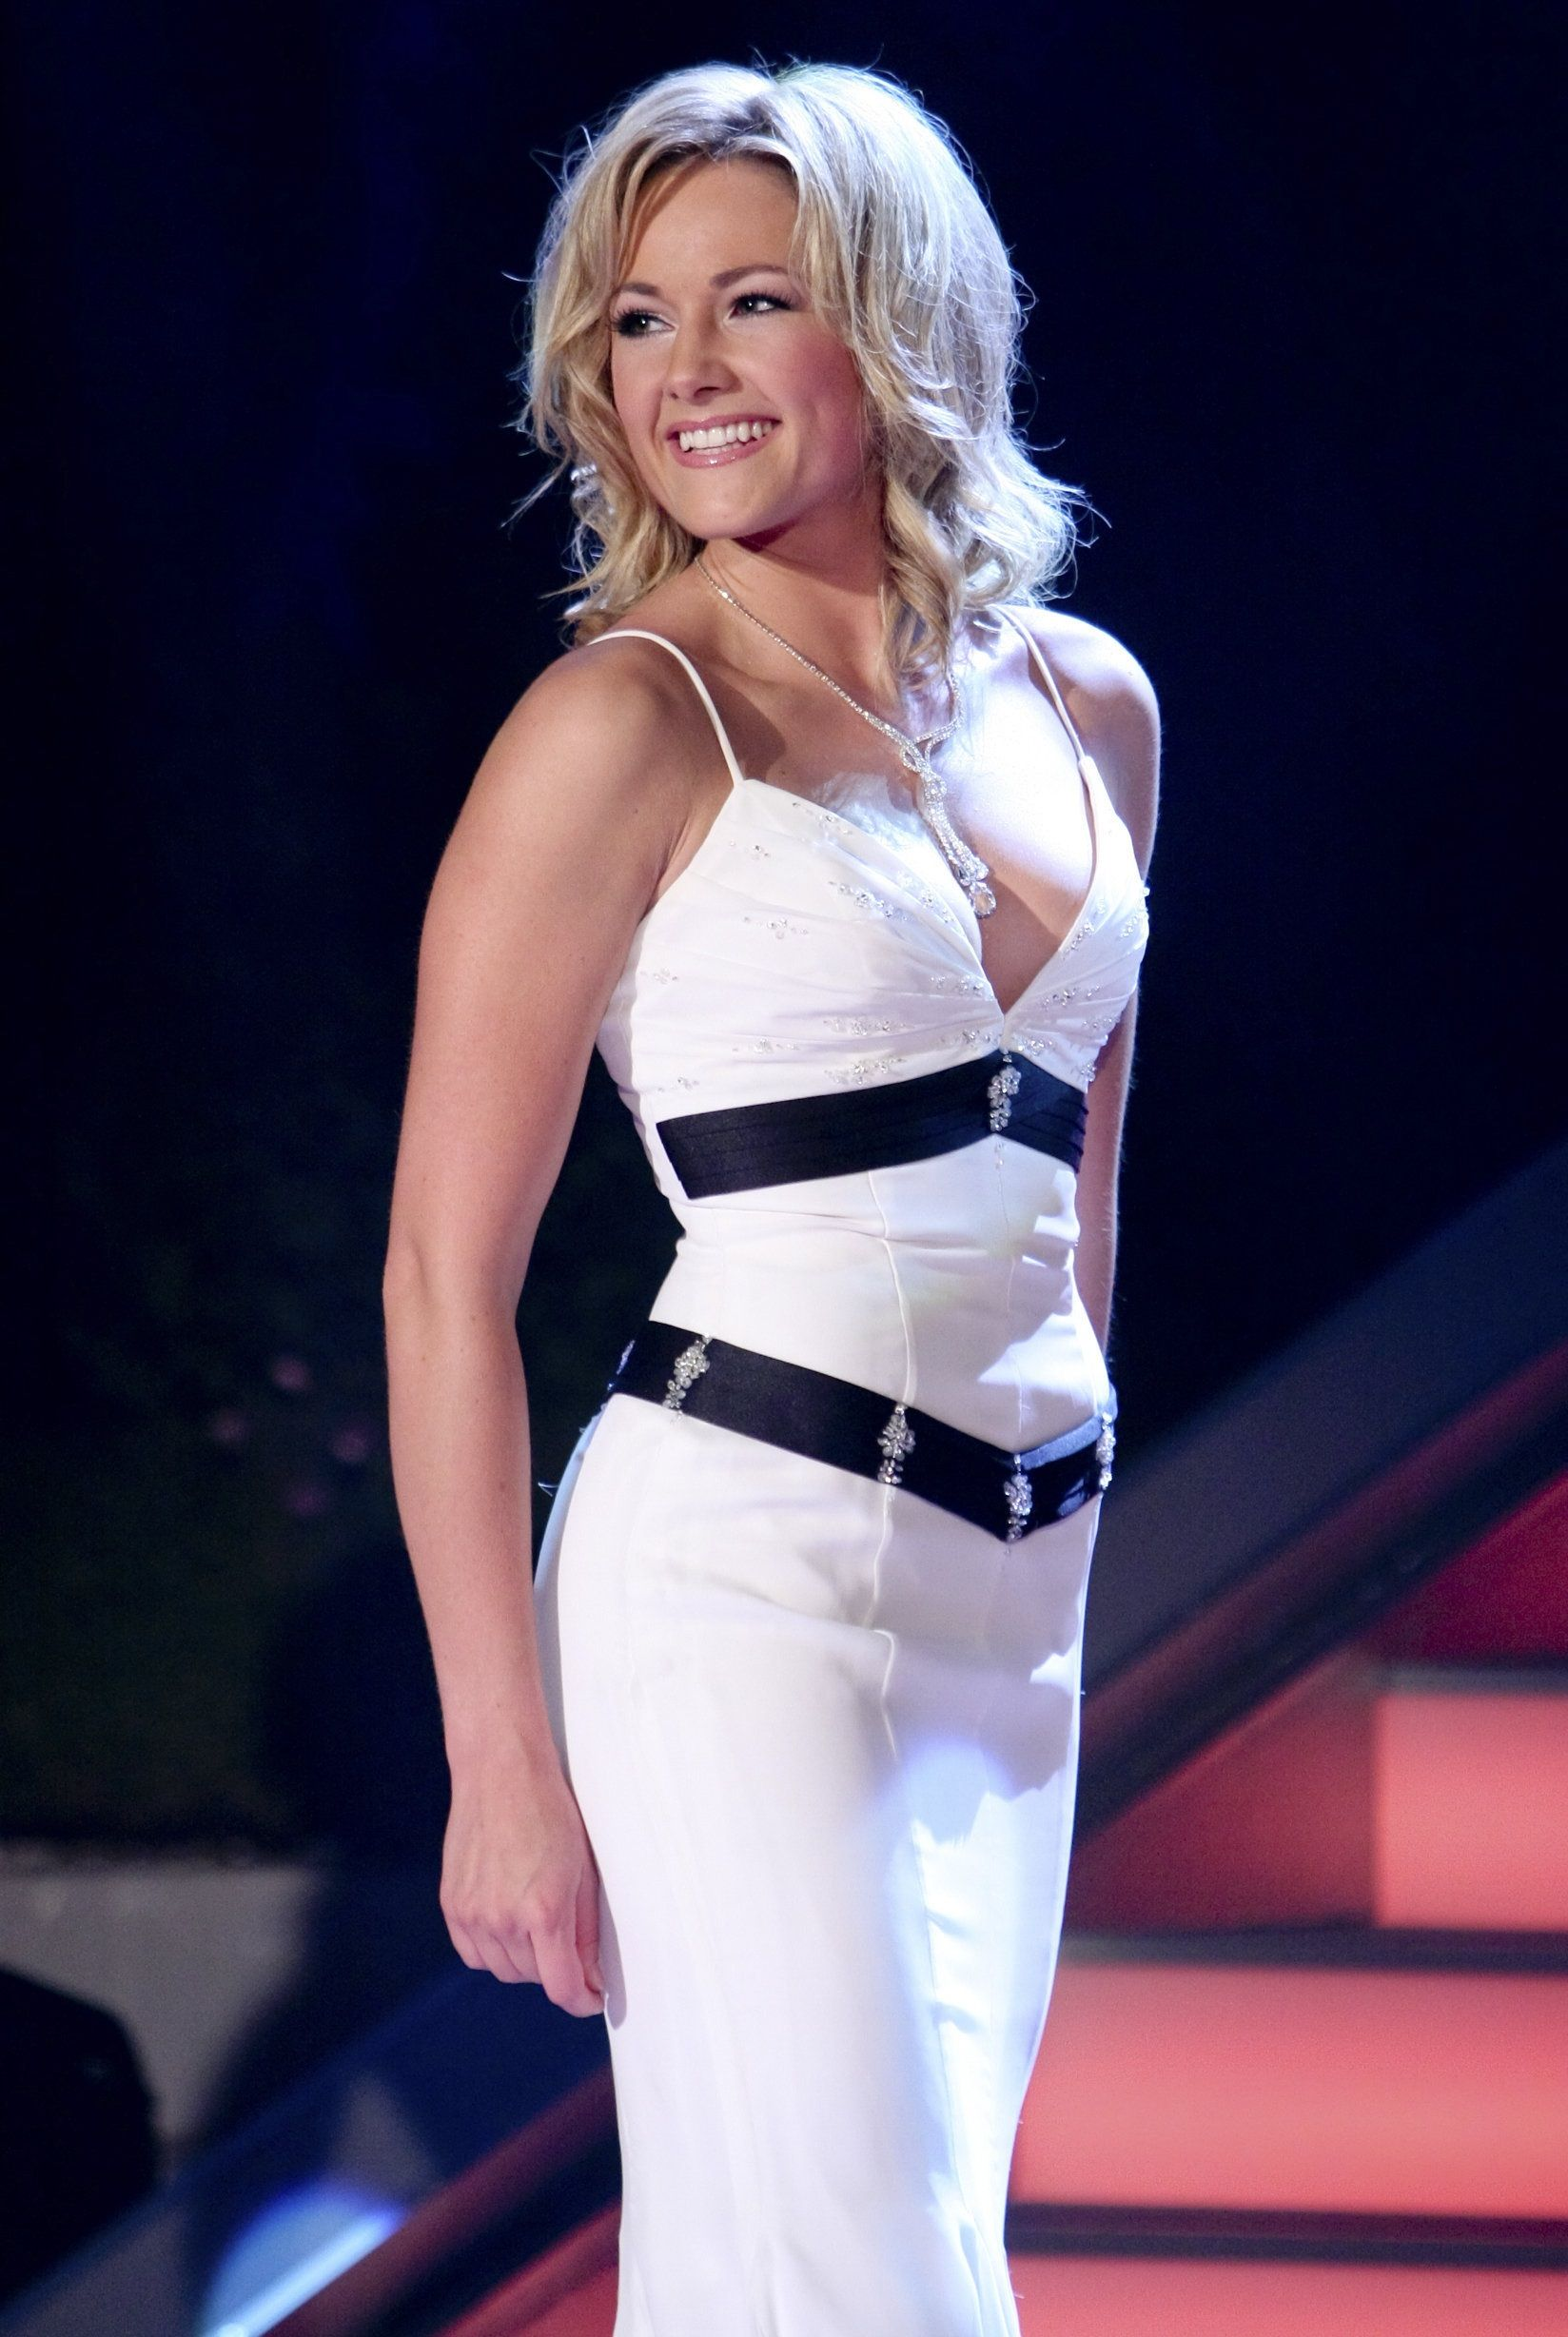 Ideas about long pixie hairstyles on pinterest - Helene Fischer Helene Fischer Pinterest